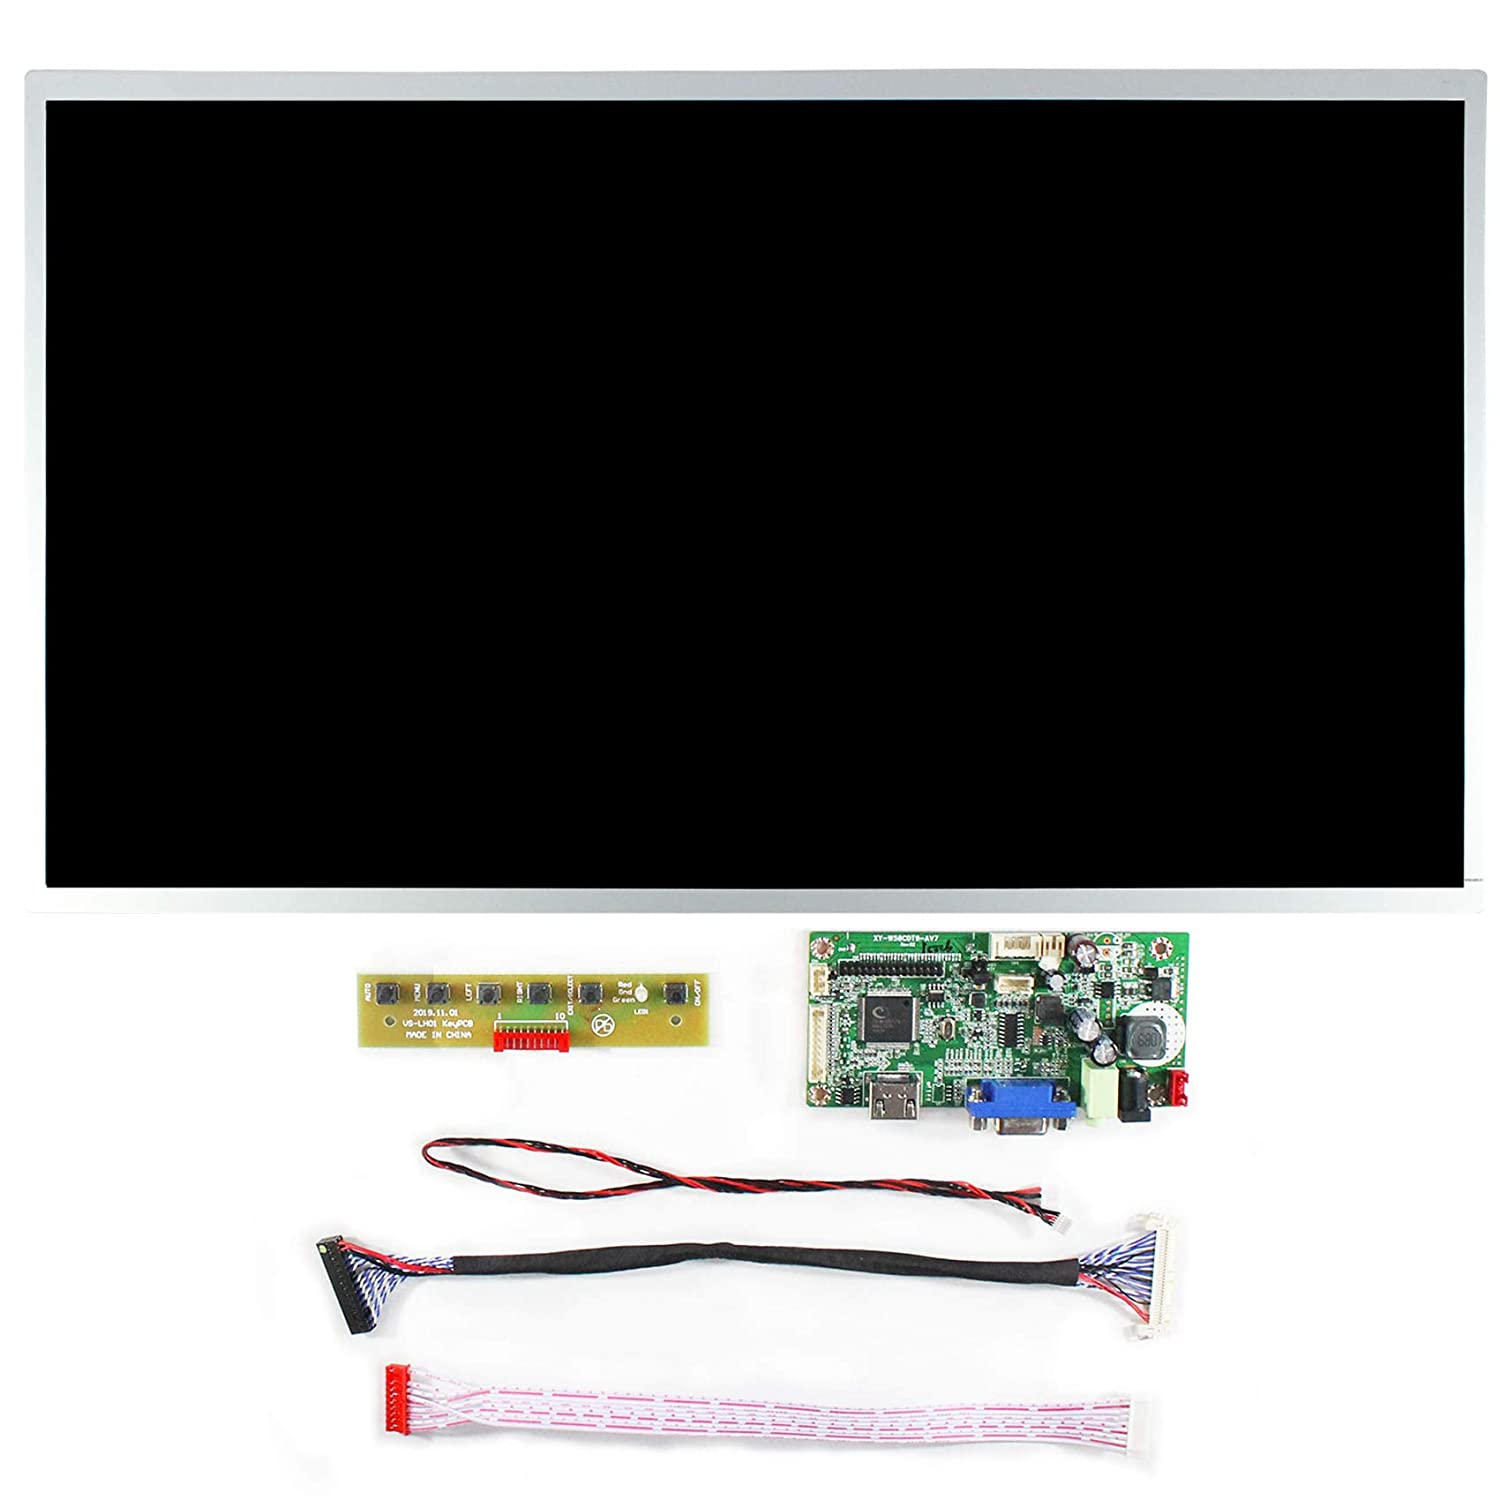 HDMI VGA AUDIO LCD Board 20.7 inch IPS LCD screen Resolution 1920RGB/×1080 Silver border LVDS Interface full viewing angle